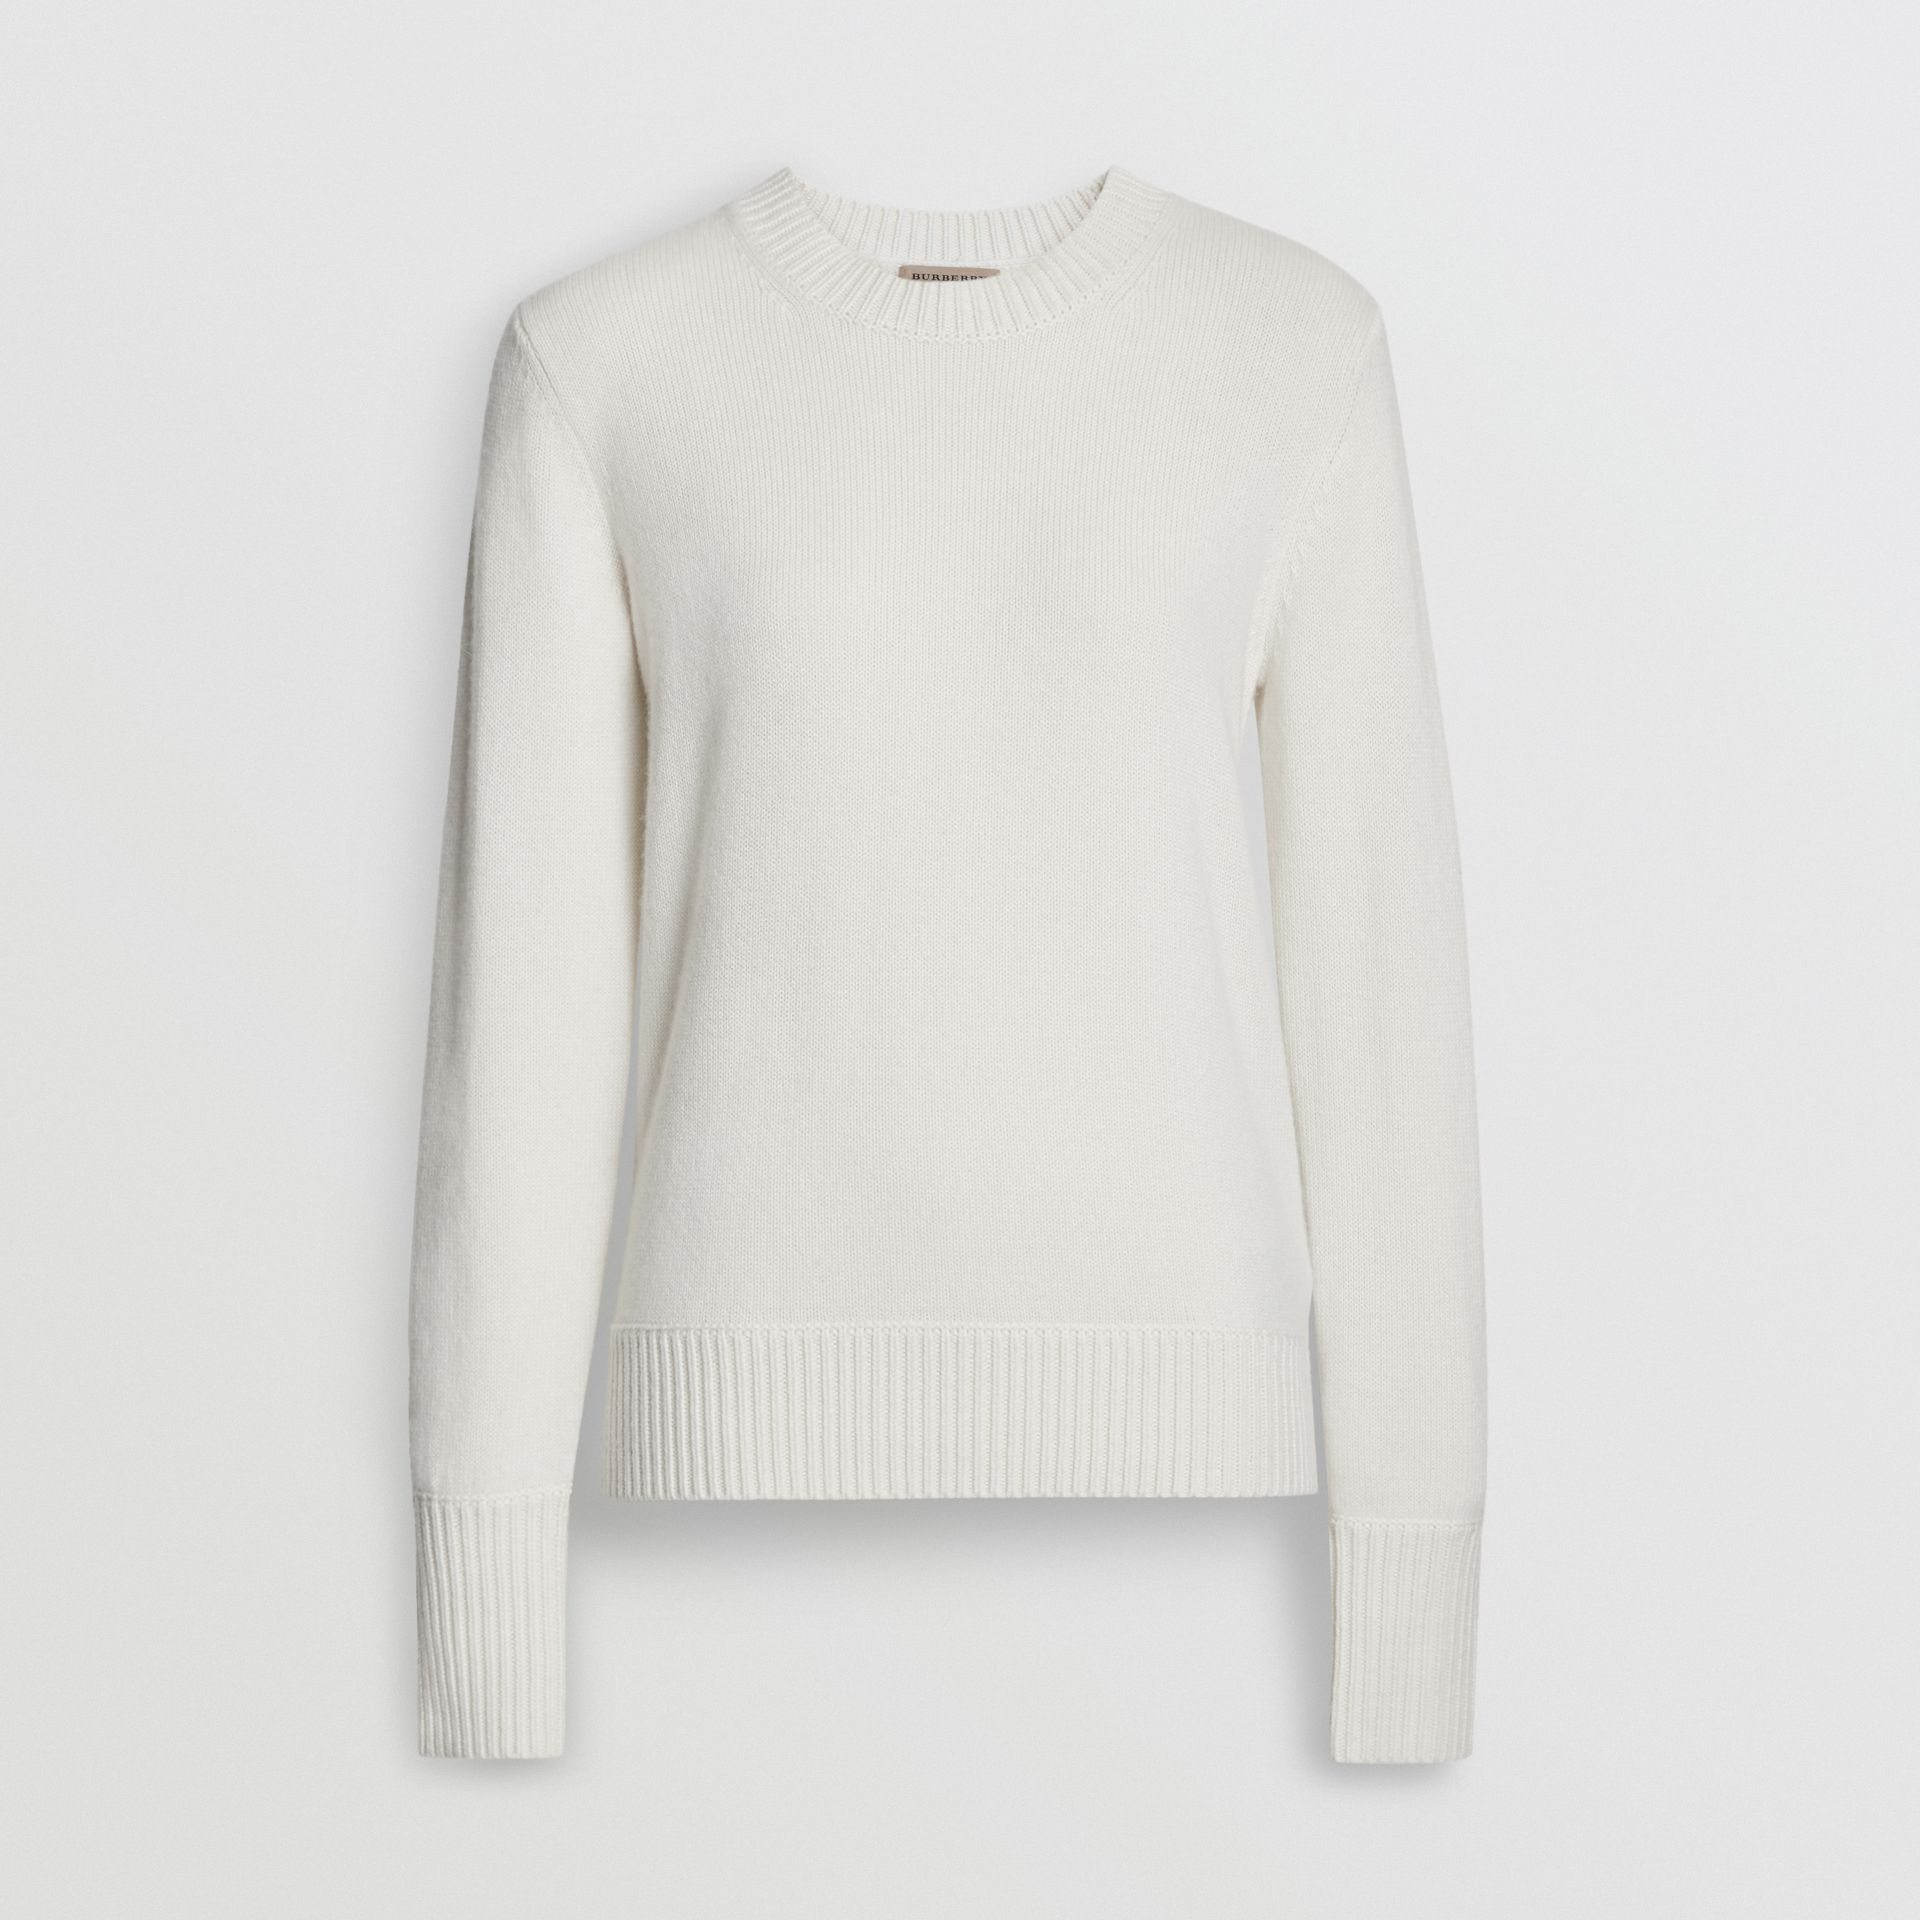 Archive Logo Appliqué Cashmere Sweater in White - Women | Burberry Australia - gallery image 3